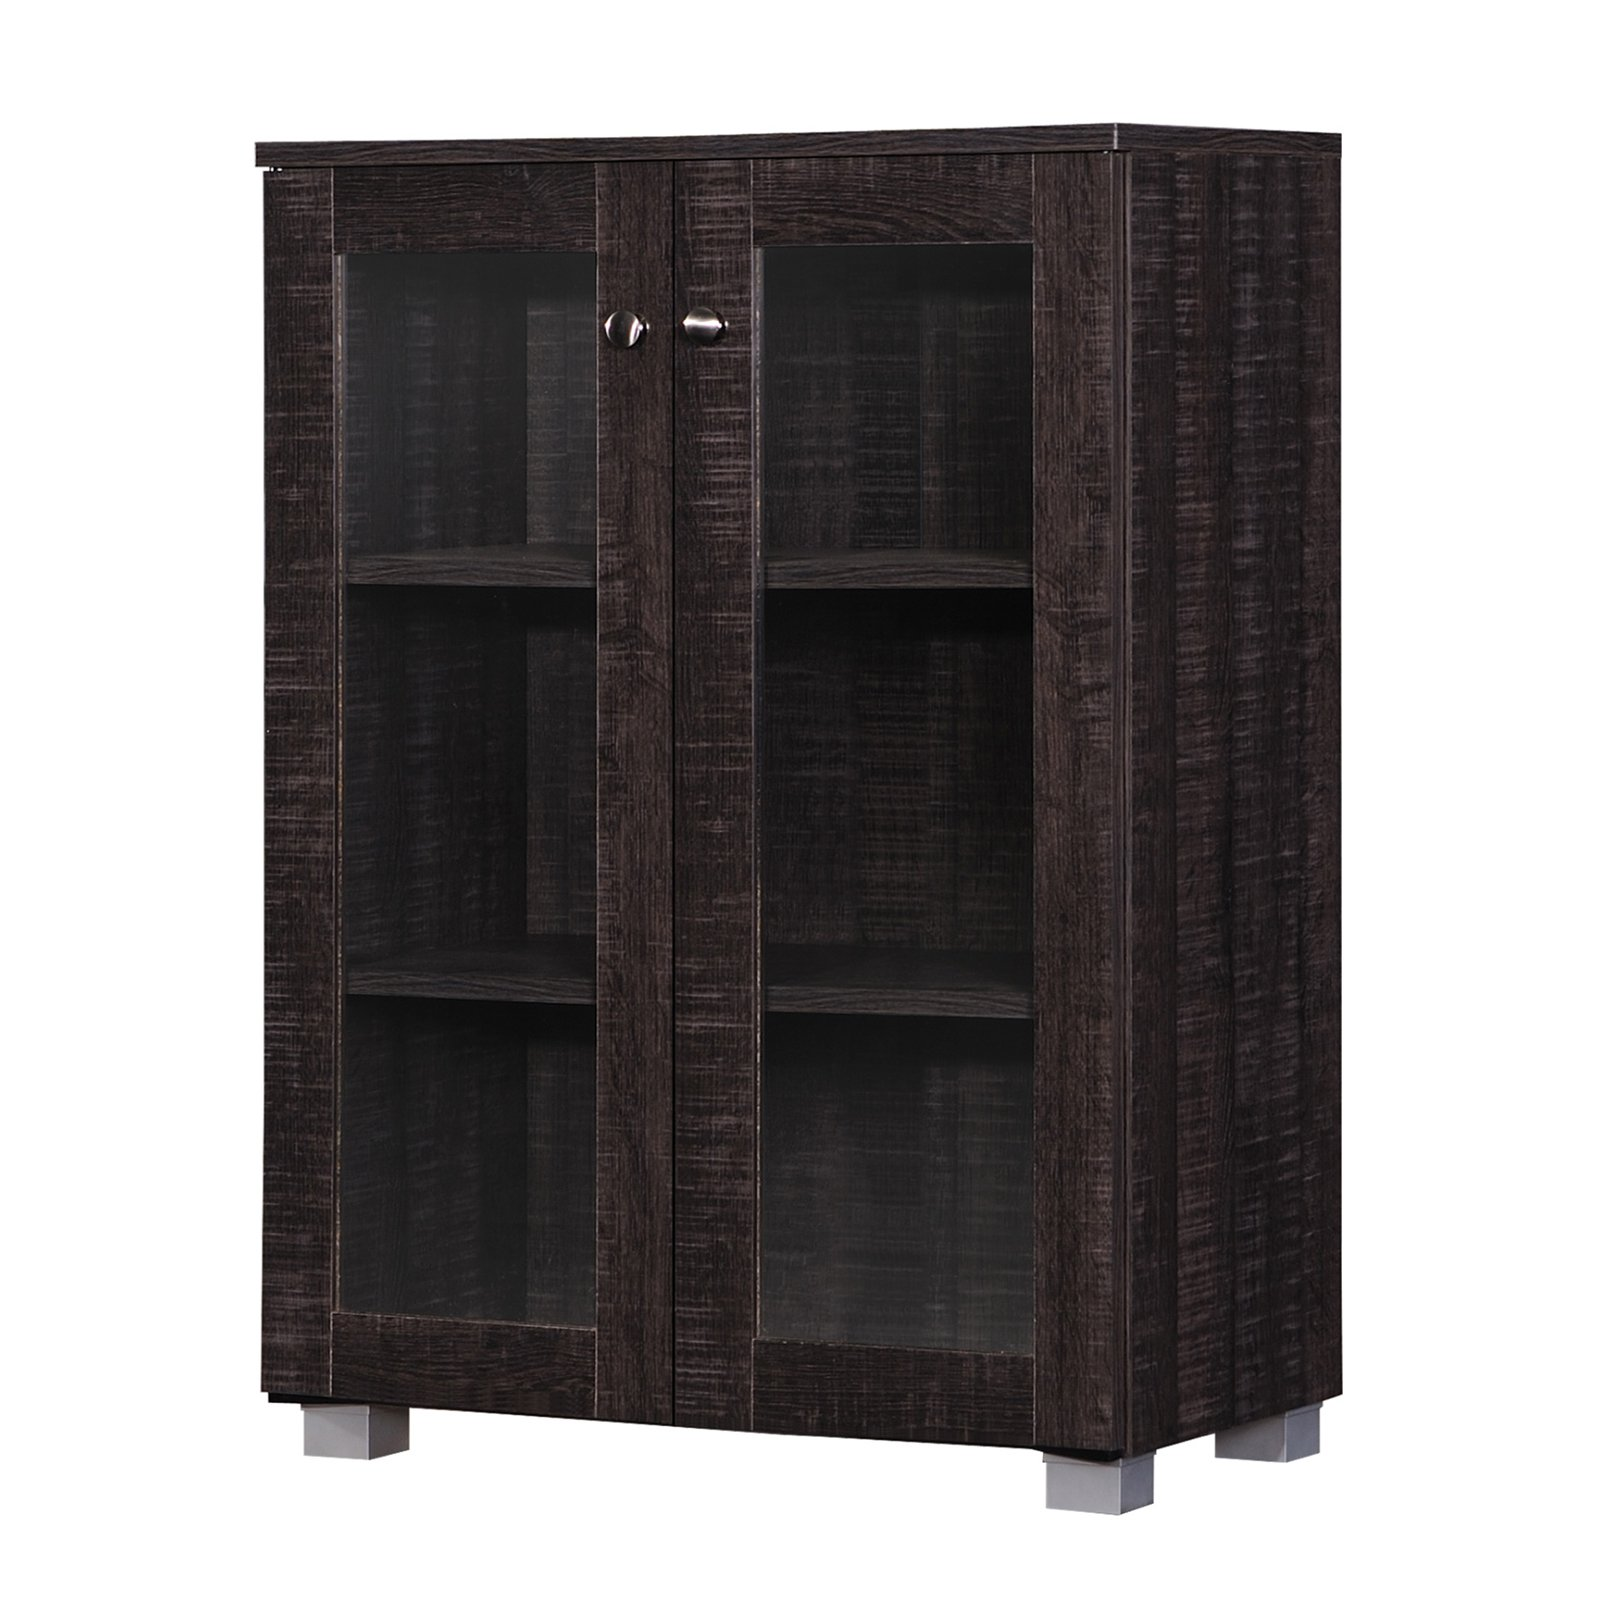 Baxton Studio Mason Modern and Contemporary Dark Brown Multipurpose Storage Cabinet Sideboard with 2 Class Doors by Baxton Studio